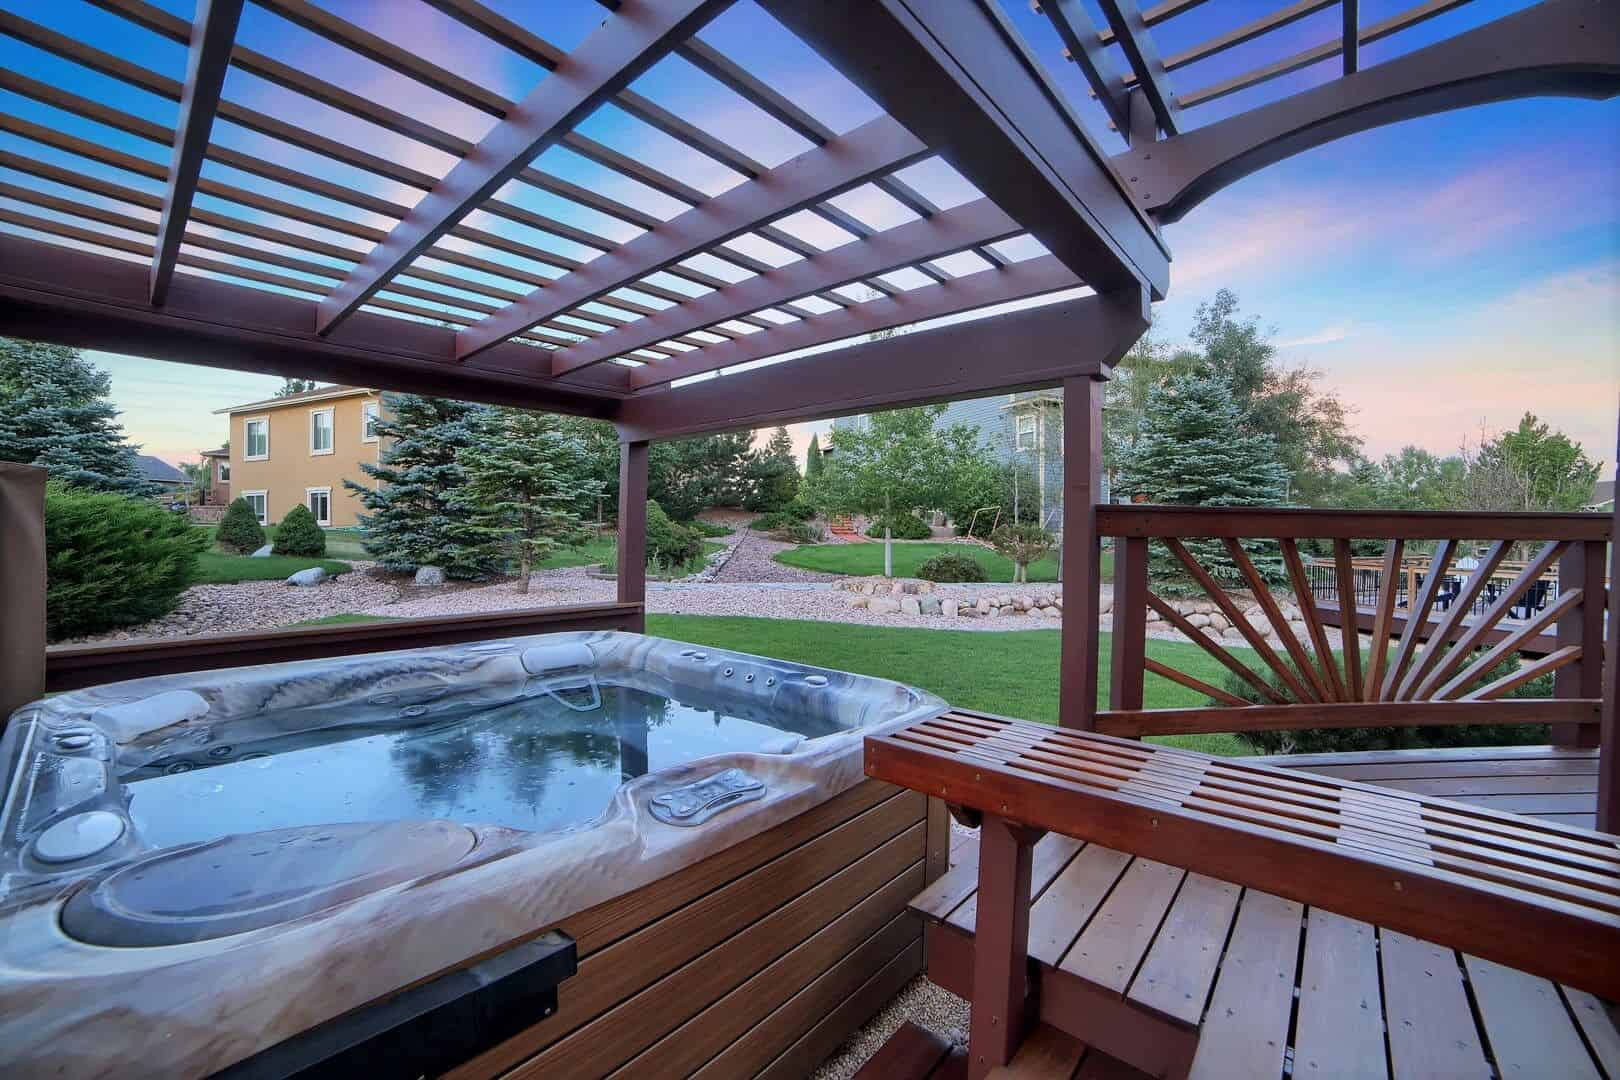 Pergola and Hot Tub